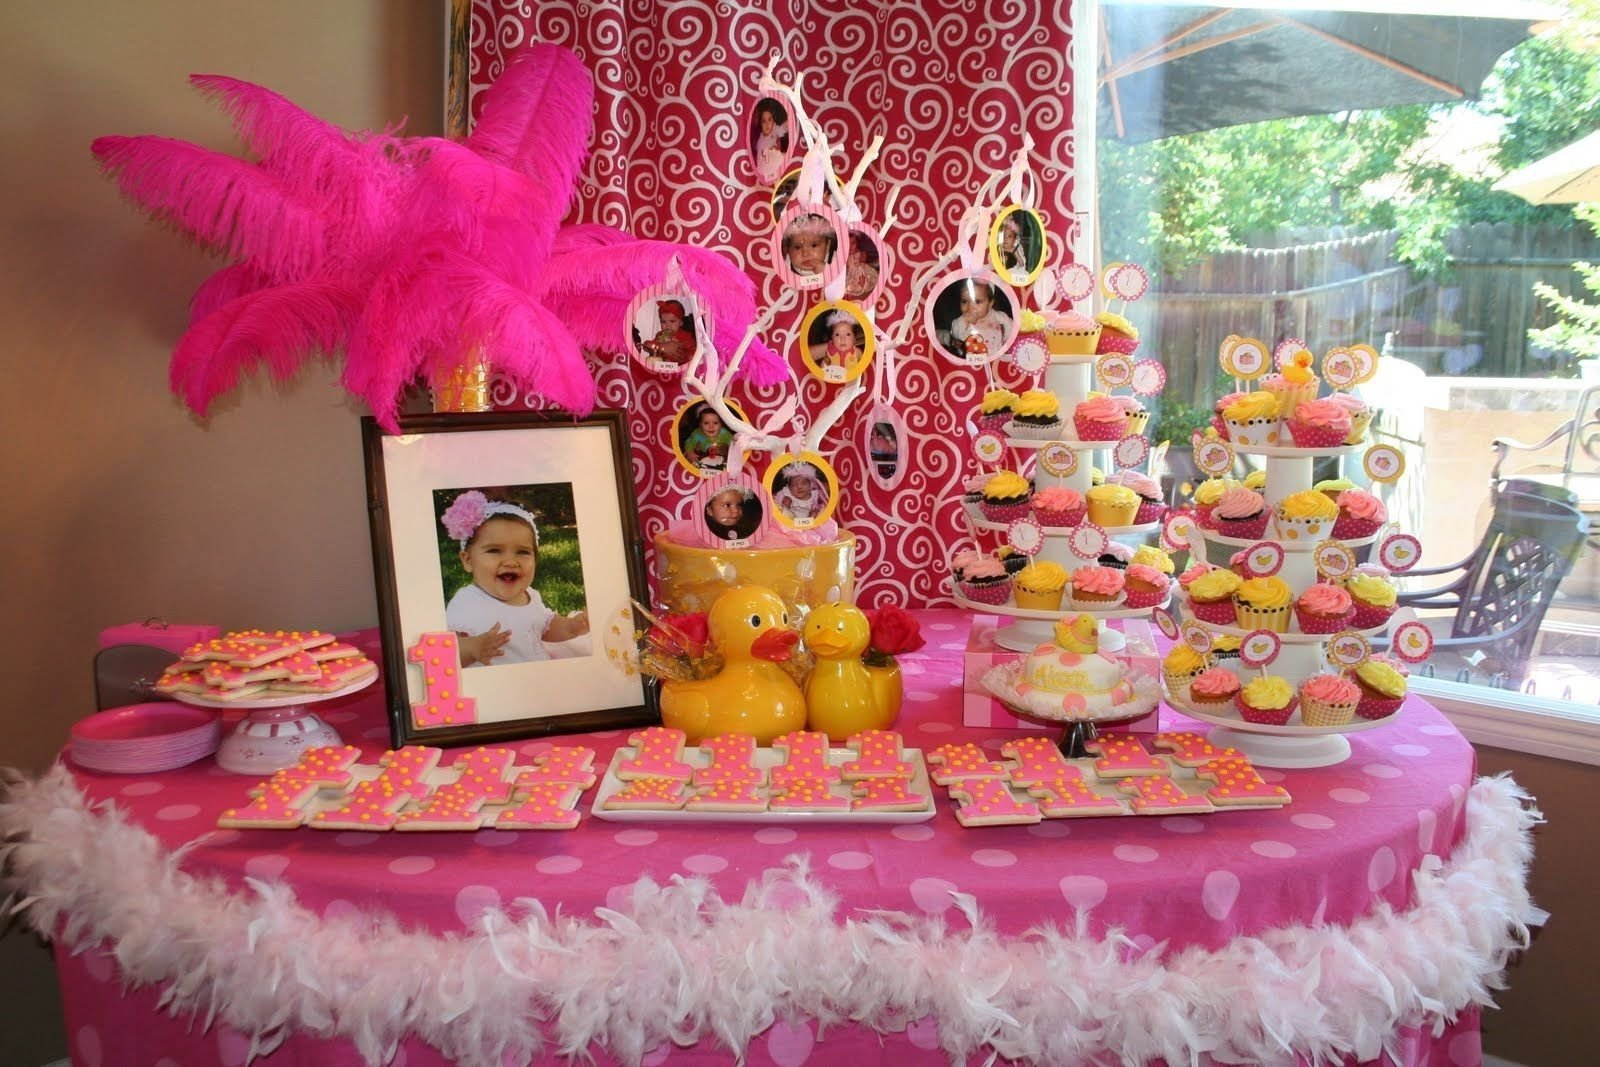 10 Lovely Baby Girl Birthday Party Ideas awesome baby girl first birthday party ideas all picture of theme 4 2020